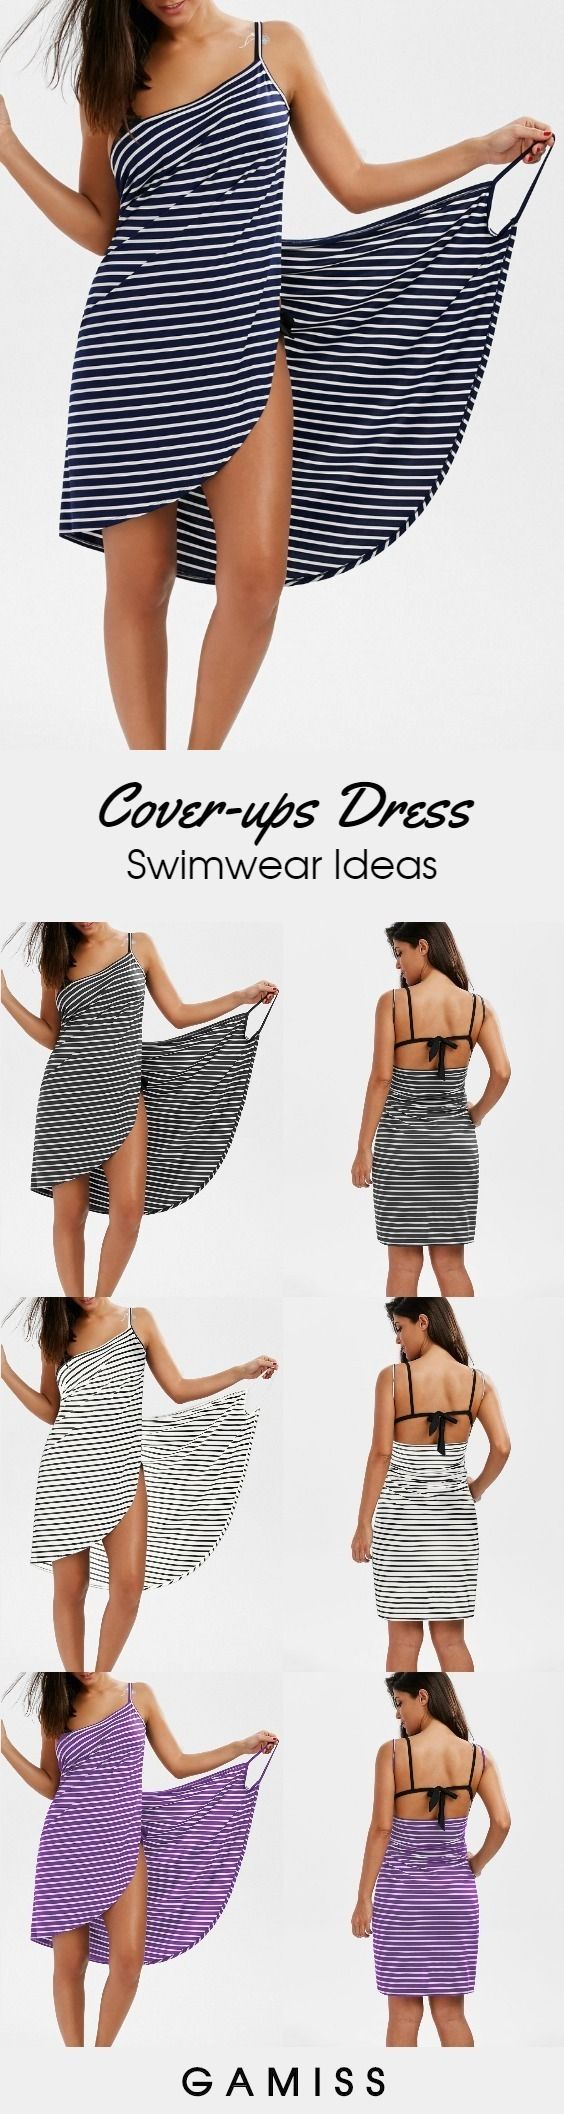 Open Back Striped Cover-ups Dress #Gamiss